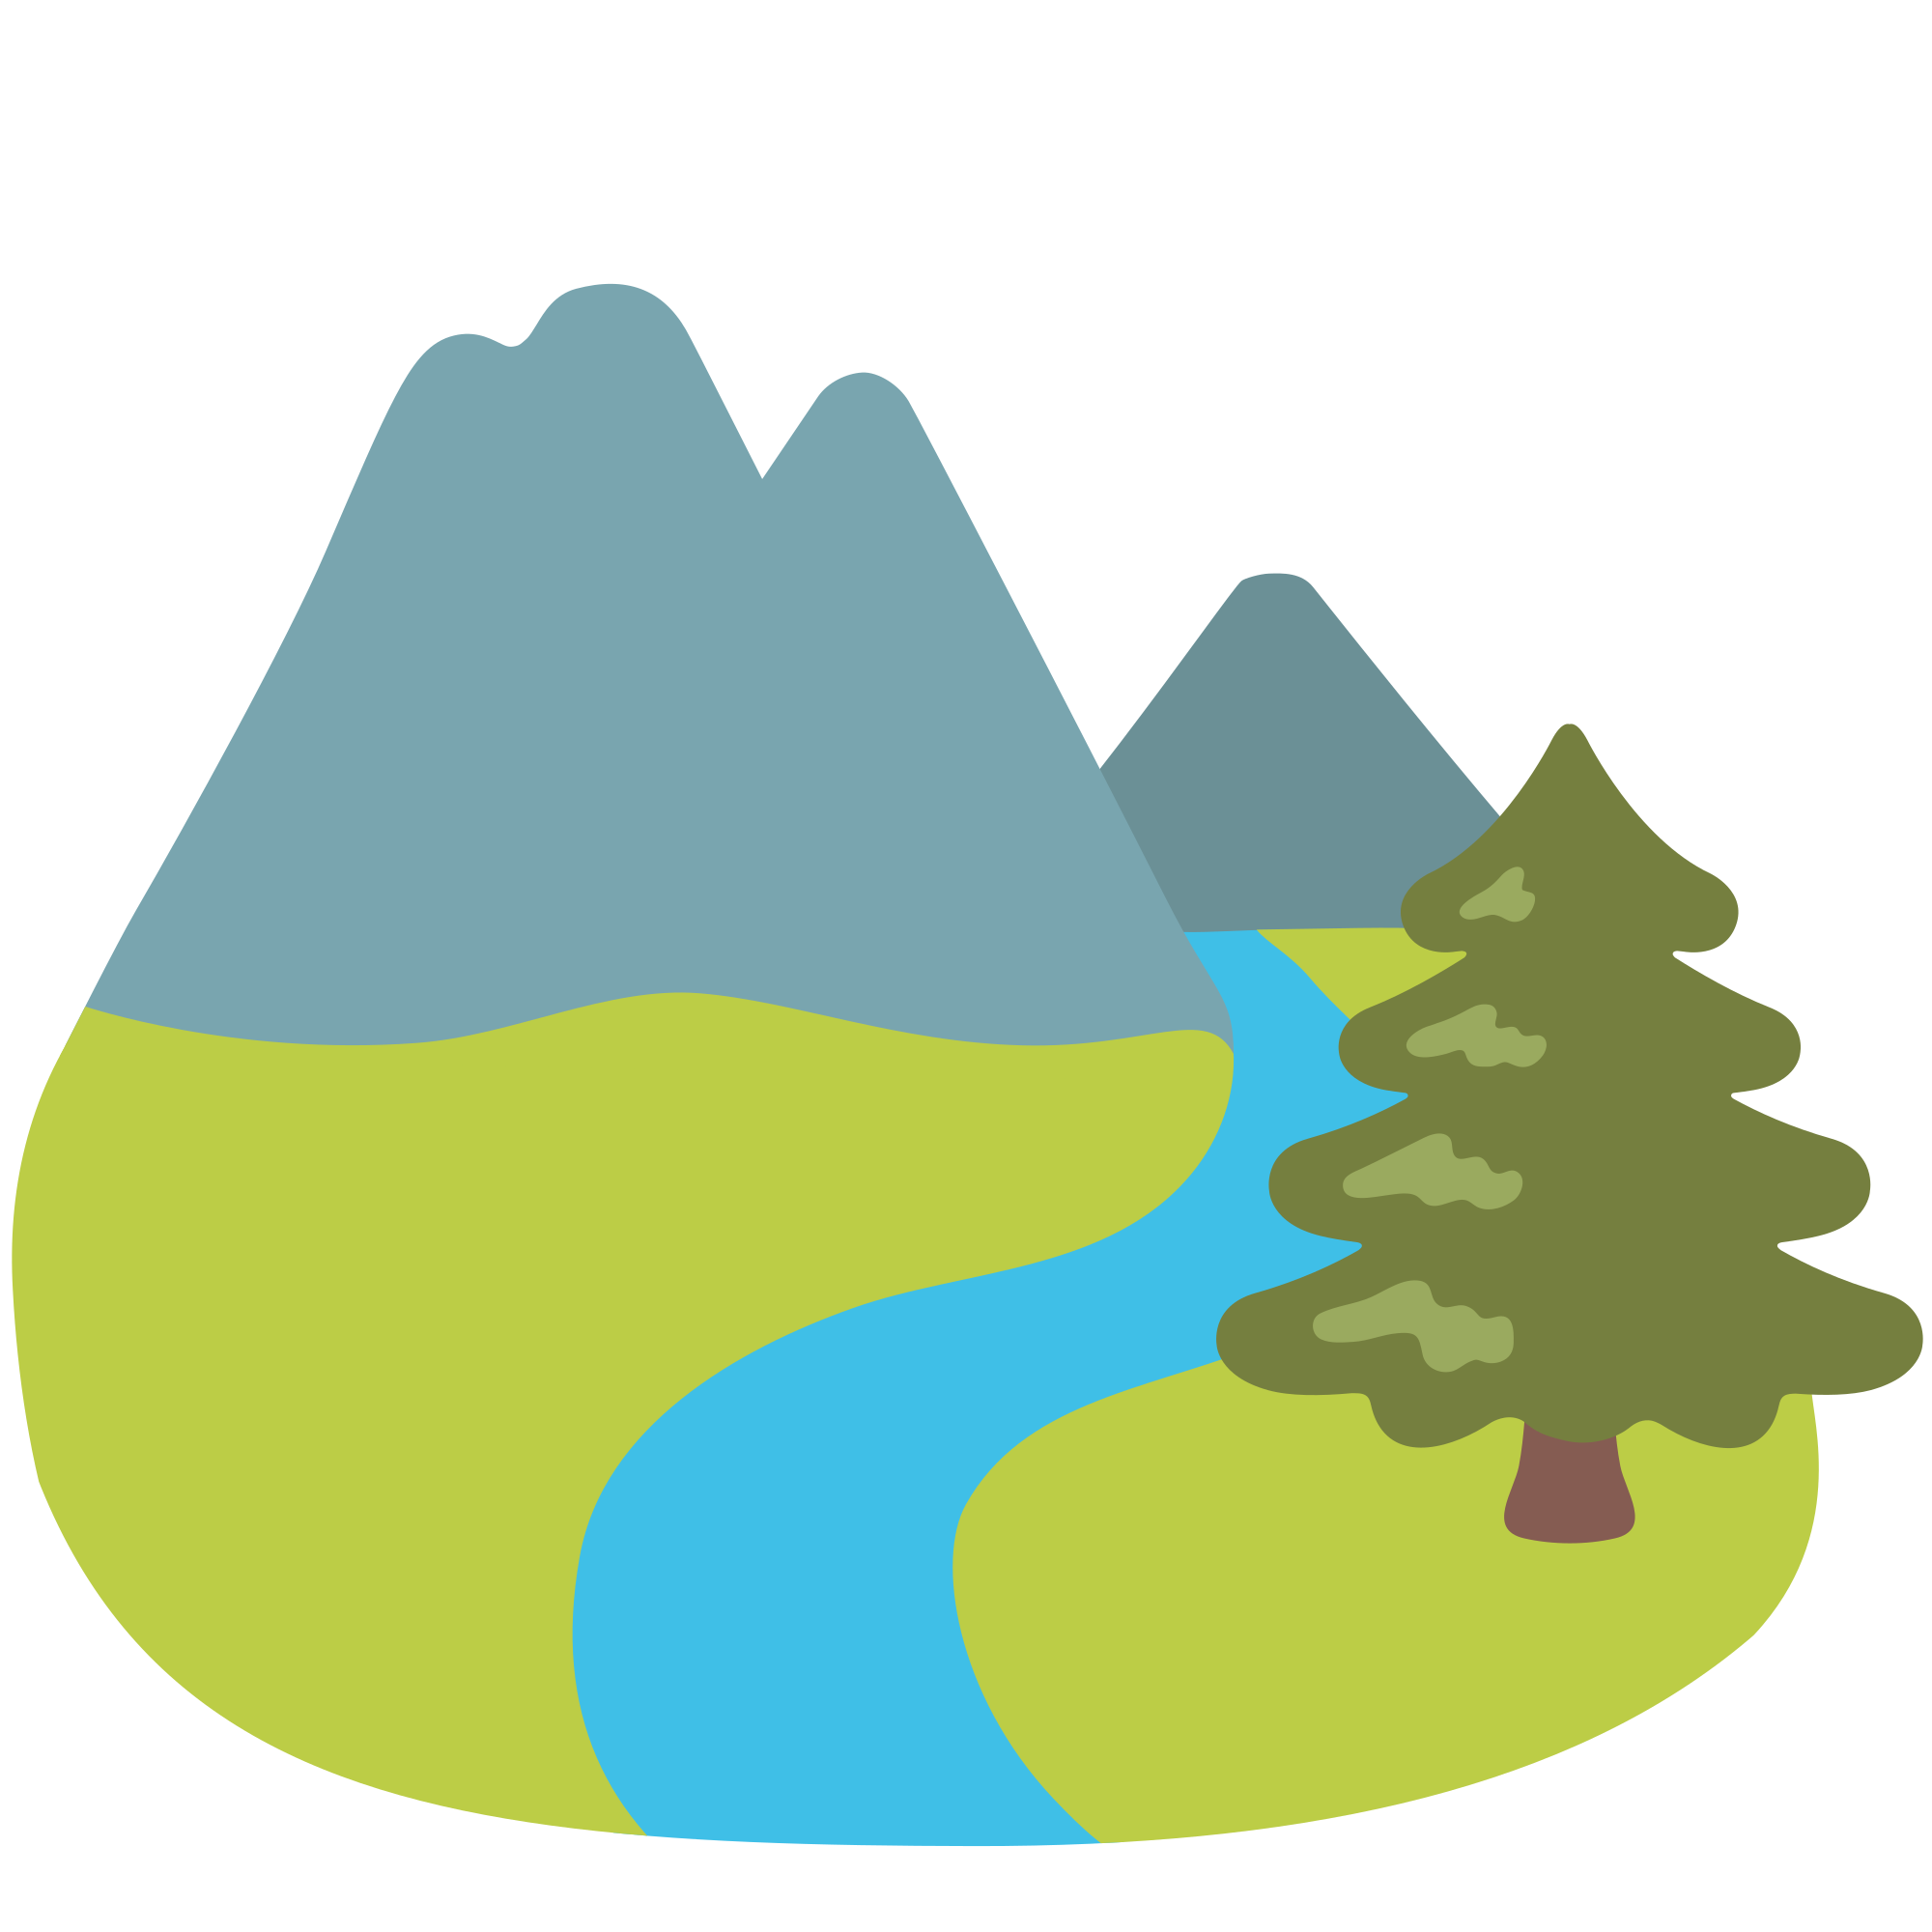 Lake clipart volcano crater. File emoji u f